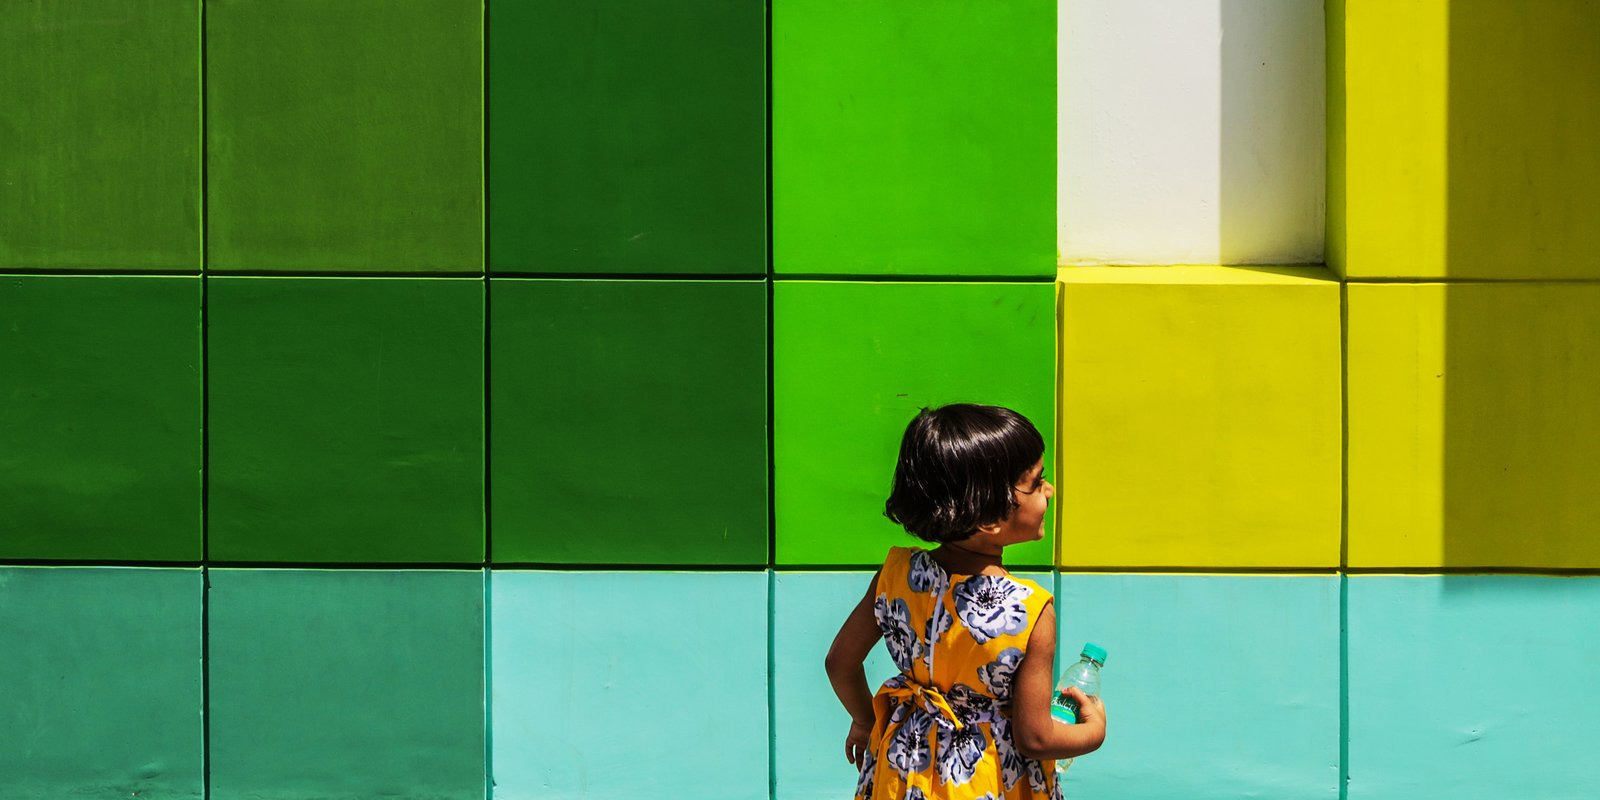 Photo 1 of 2 in A Dilapidated Home in New Delhi Is Transformed Into a School That Fosters Creativity